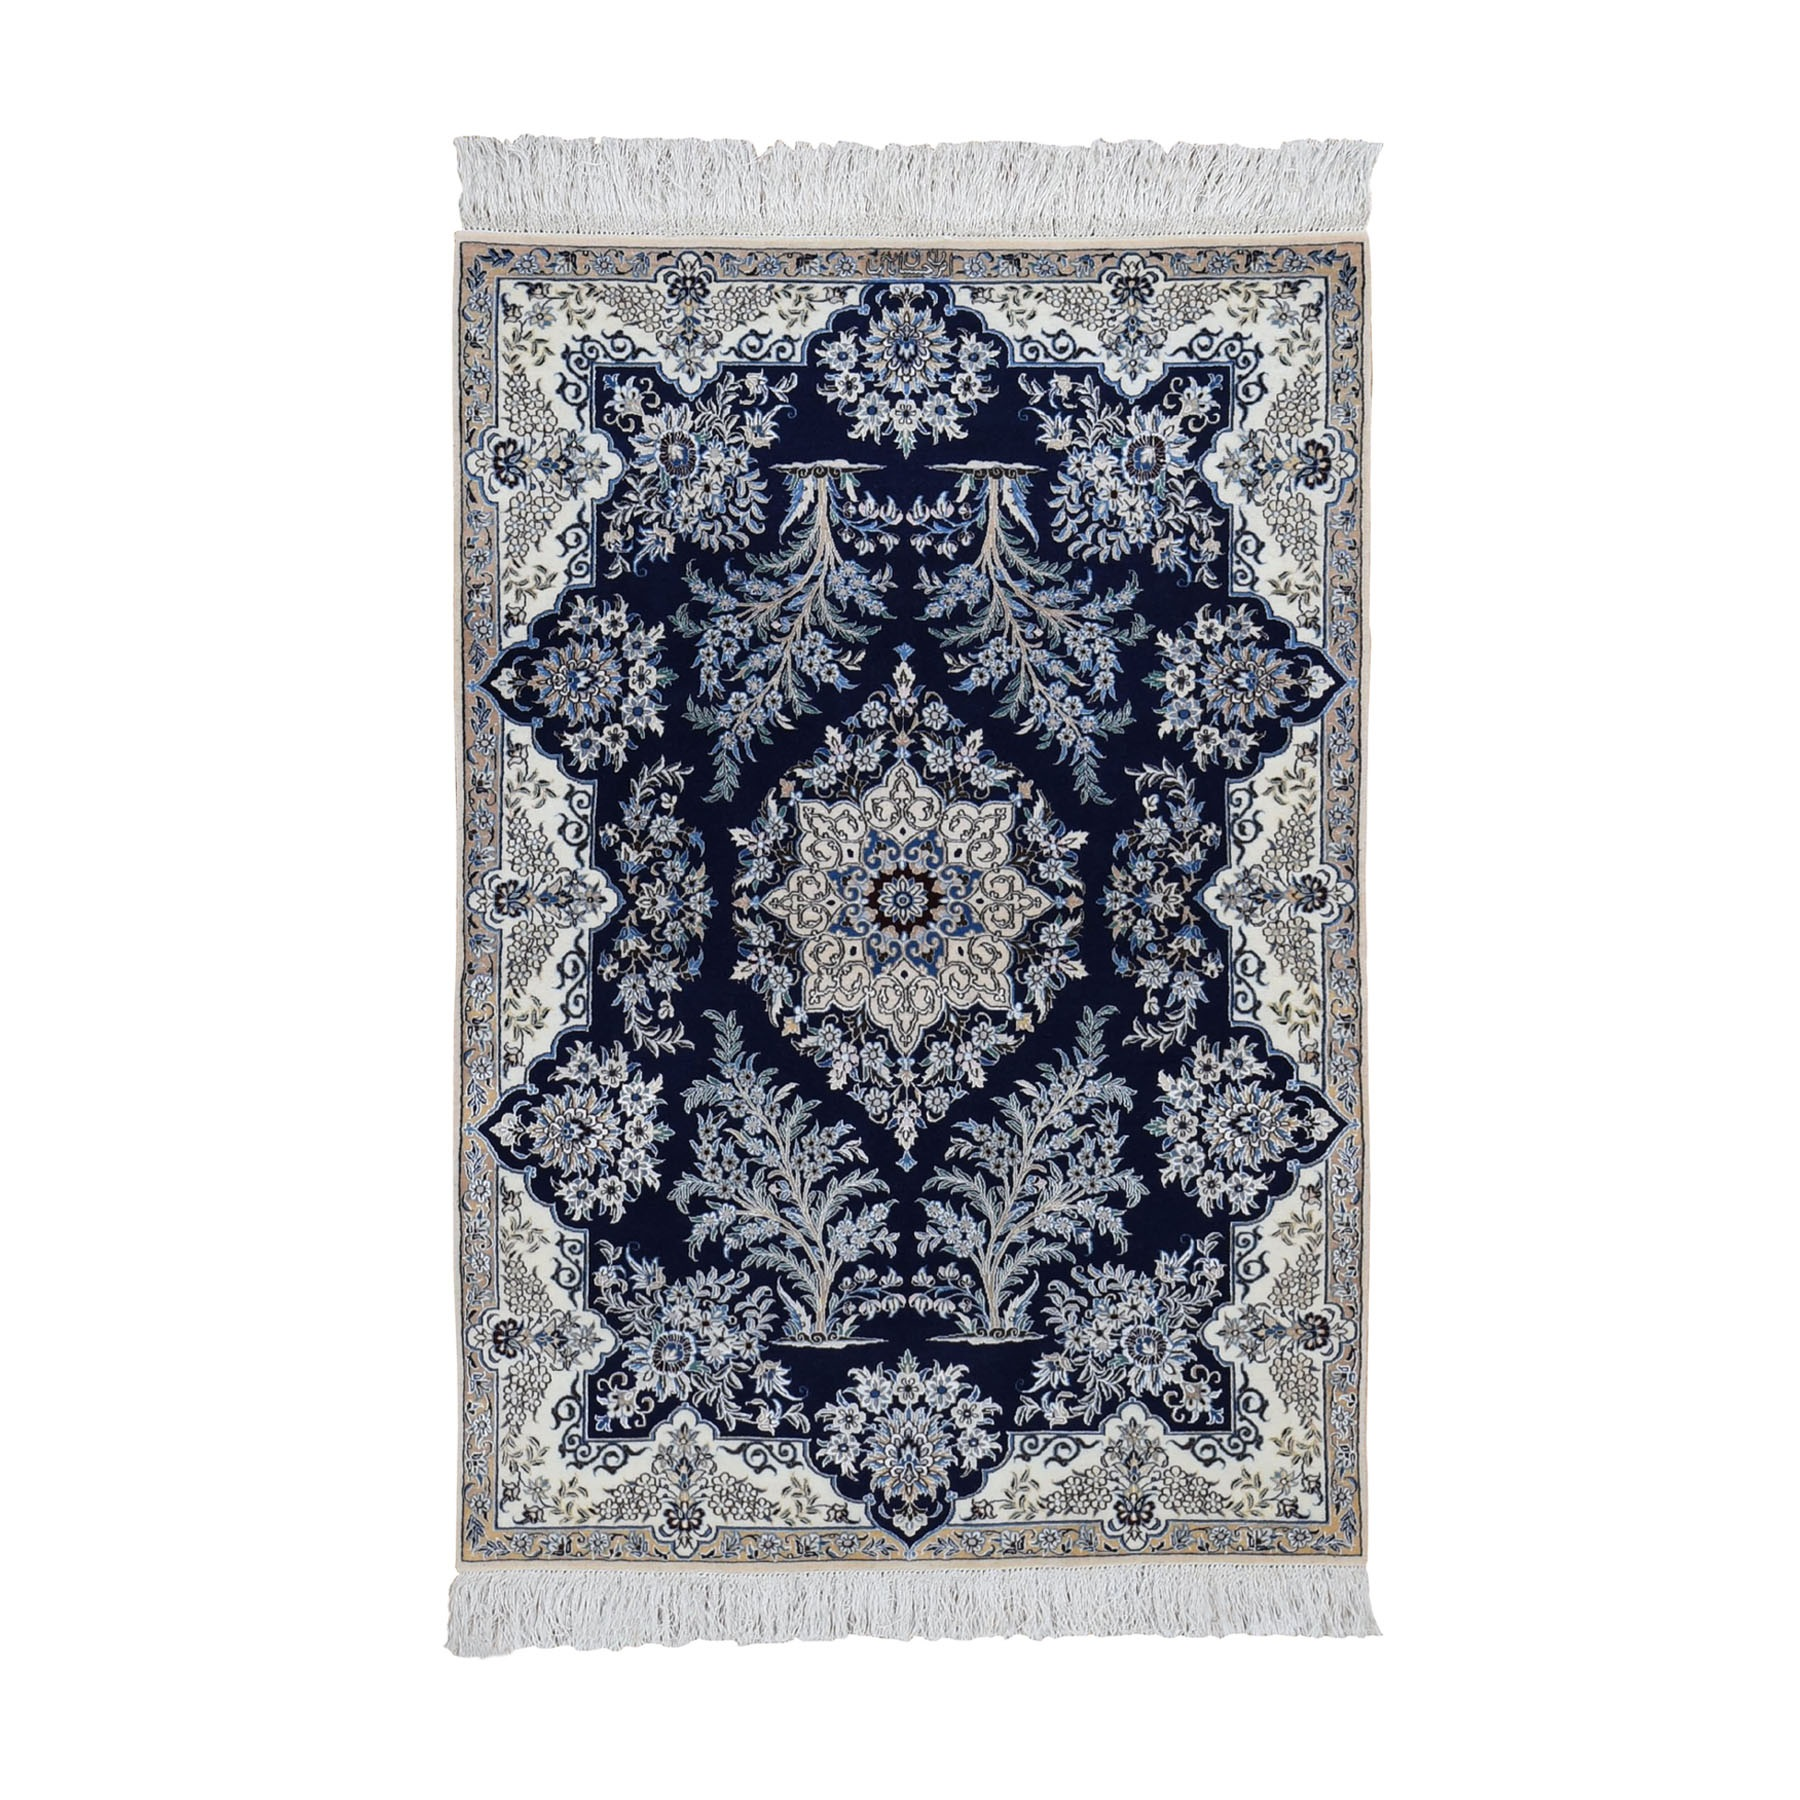 "3'2""x5' Wool And Silk Navy Blue Persian Nain 400 KPSI Signed Habibian Hand Knotted Oriental Rug"